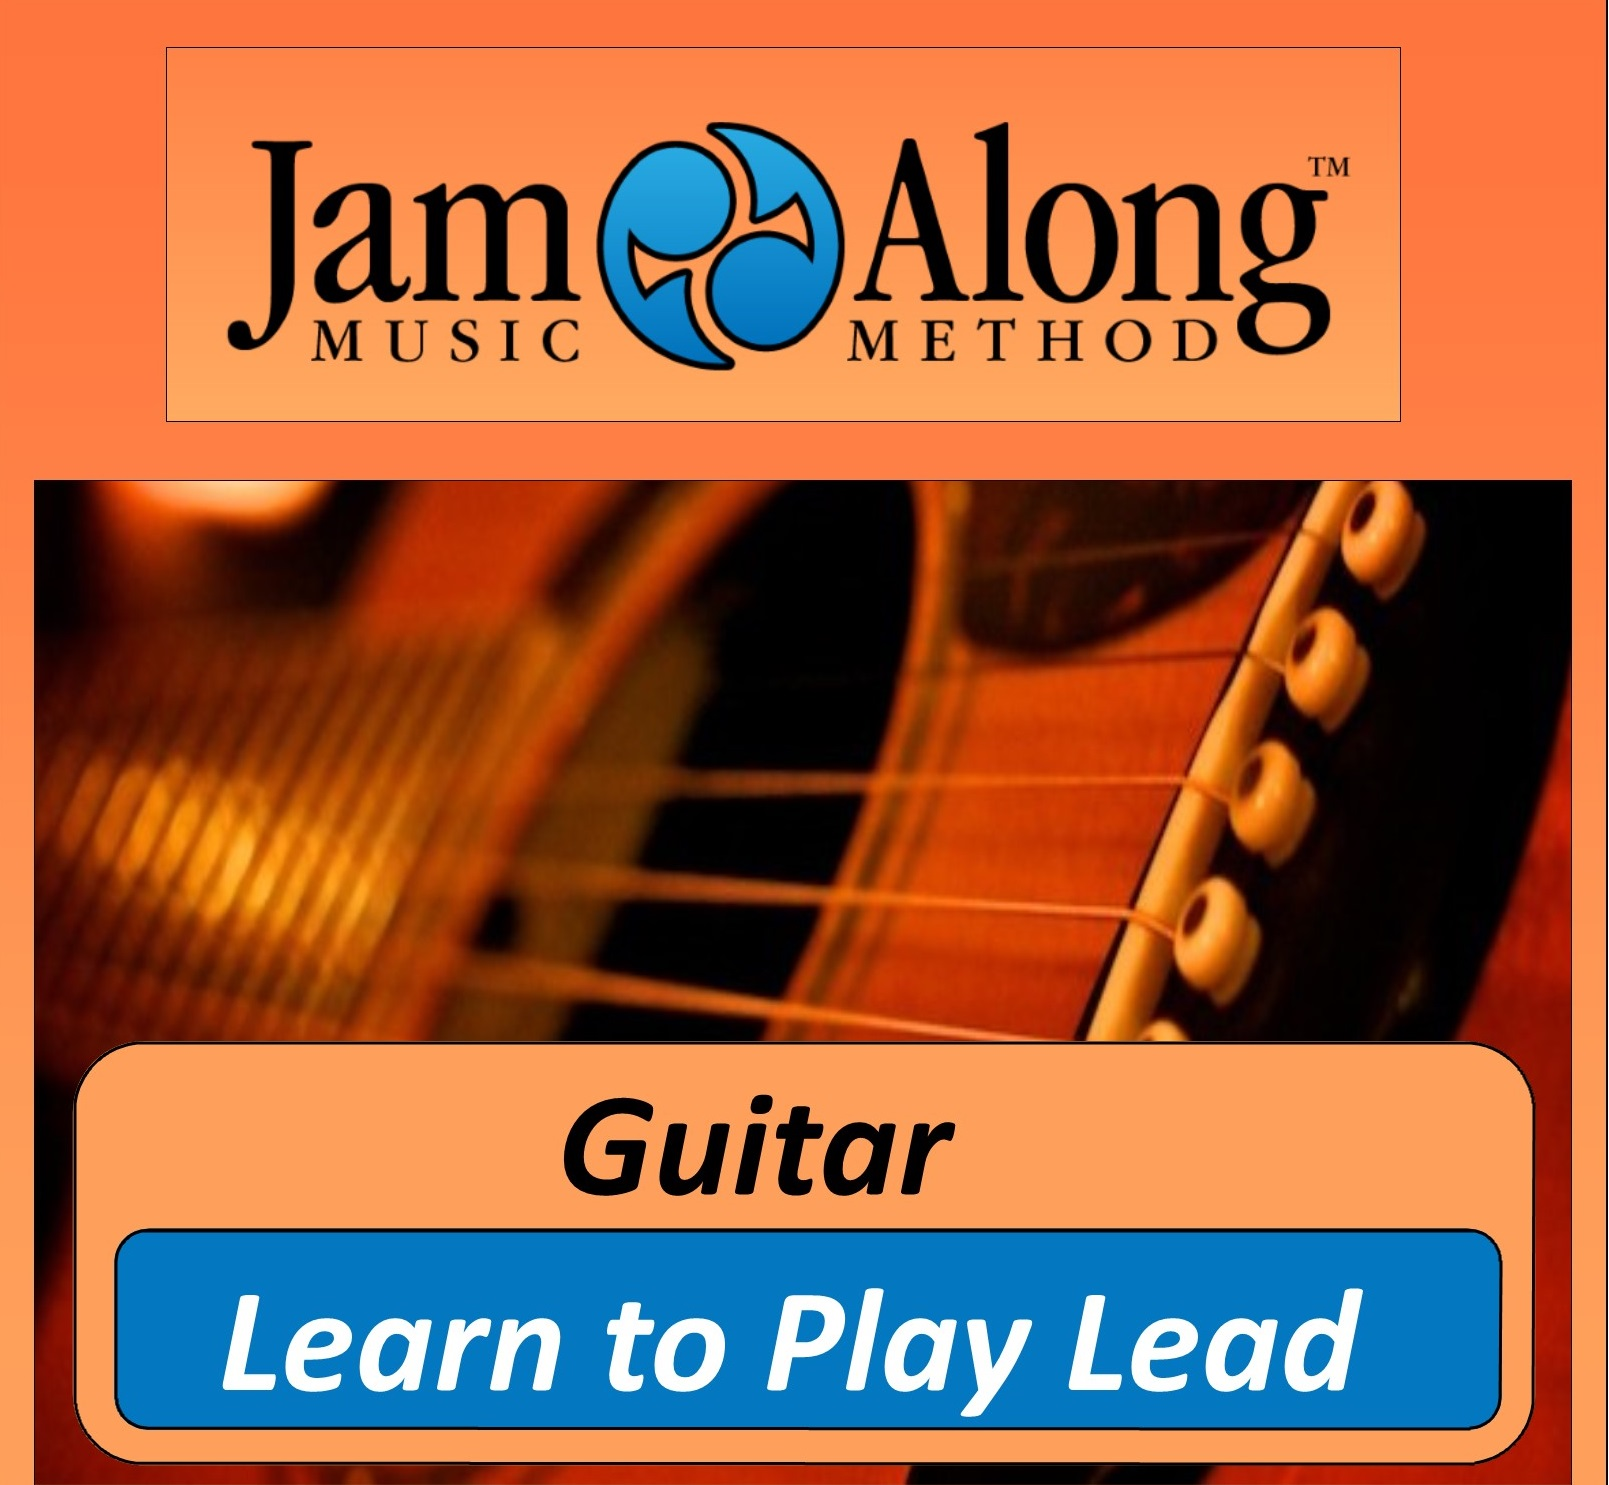 Learn to Play Lead